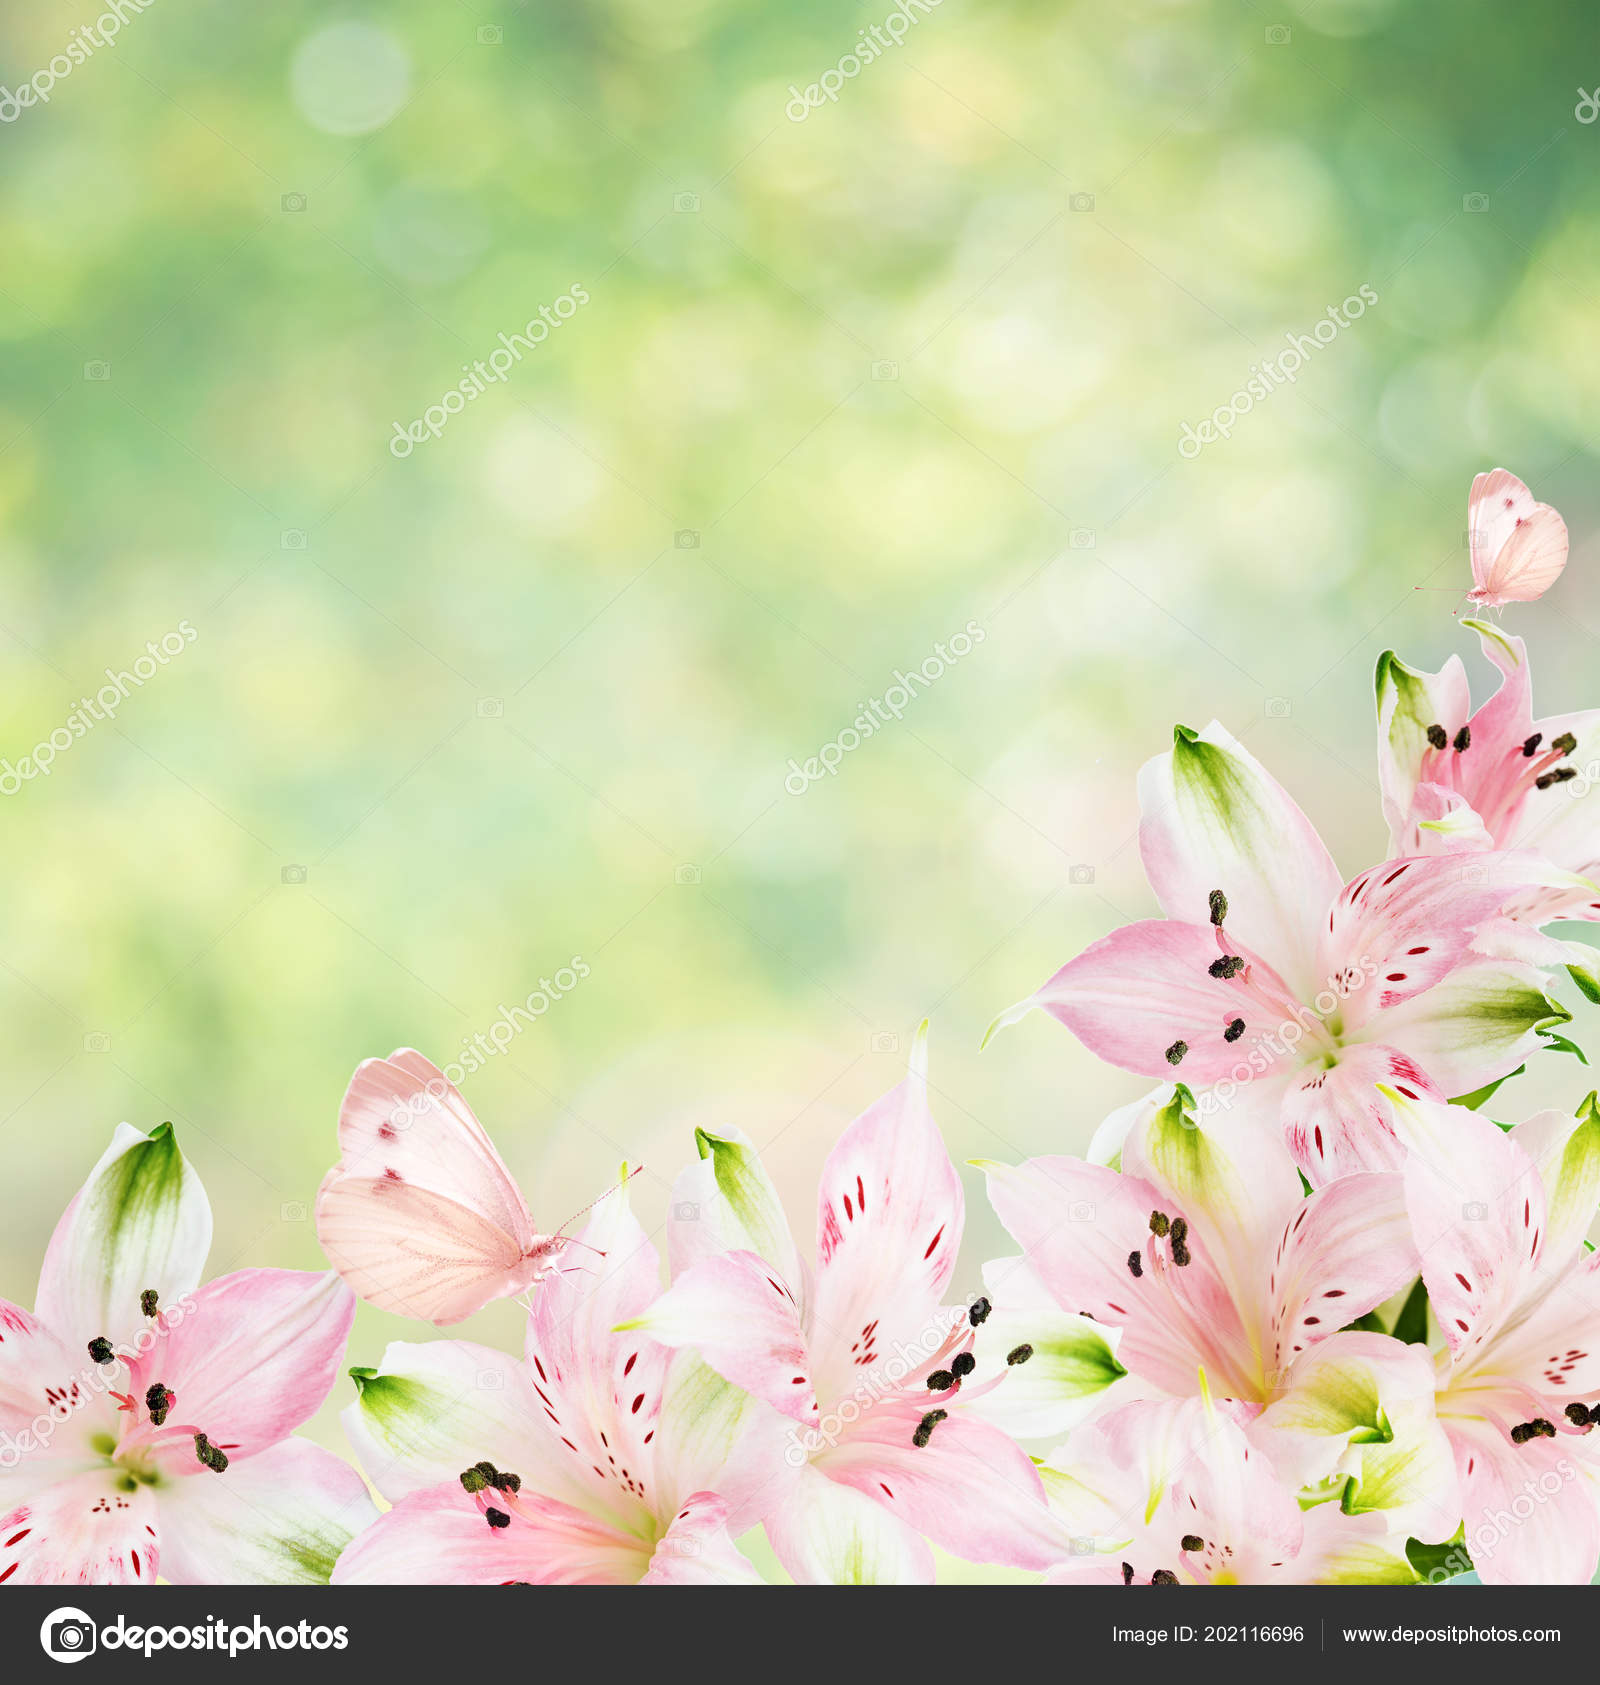 Beautiful Frame Pink Alstroemeria Flowers Butterfly Blurred Abstract